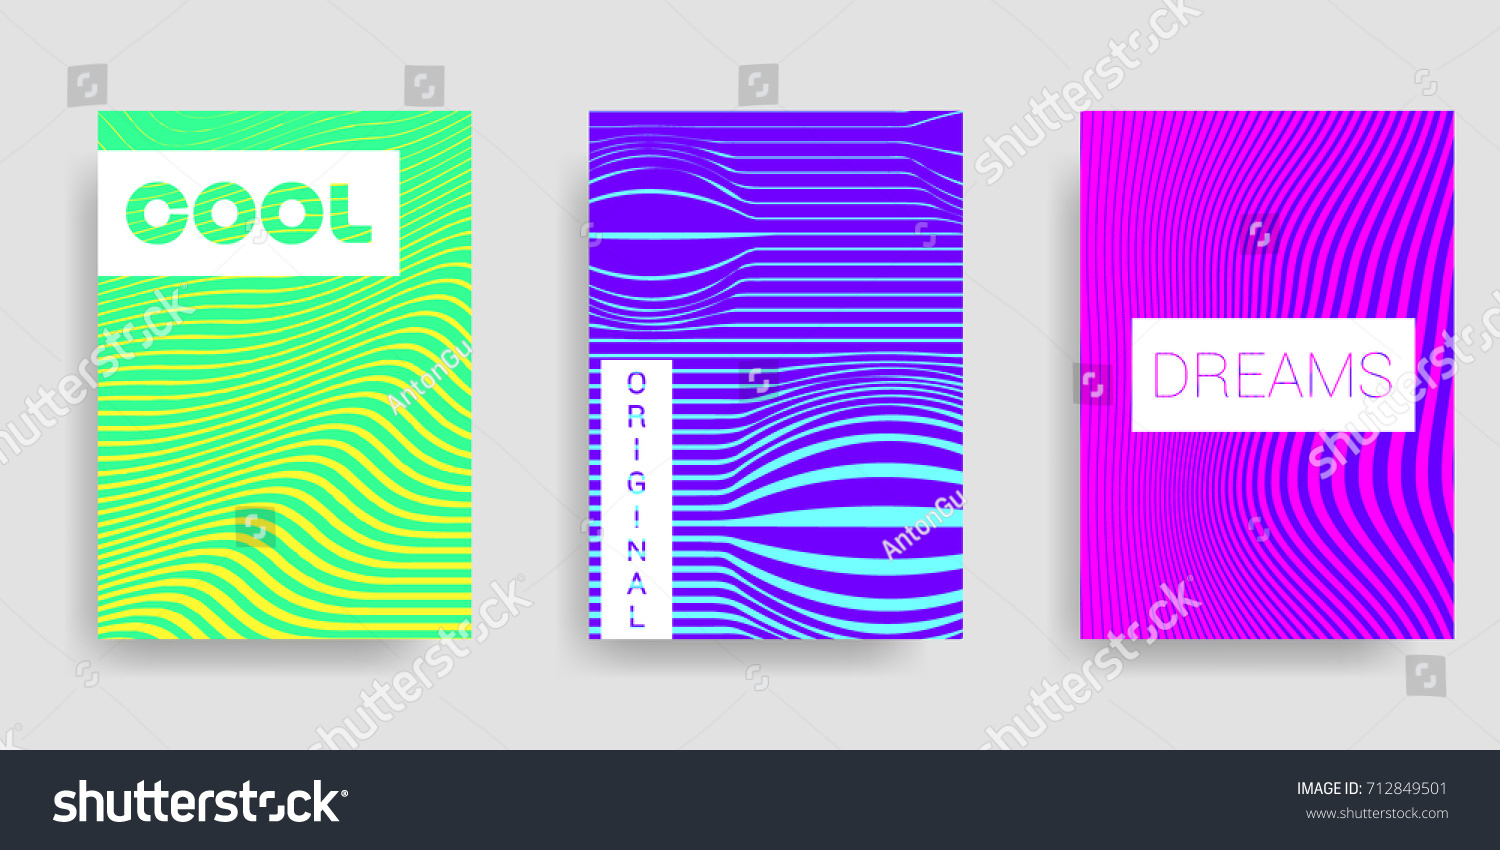 c2351853d5 Minimal vector covers design. Cool gradients. Future geometric template.